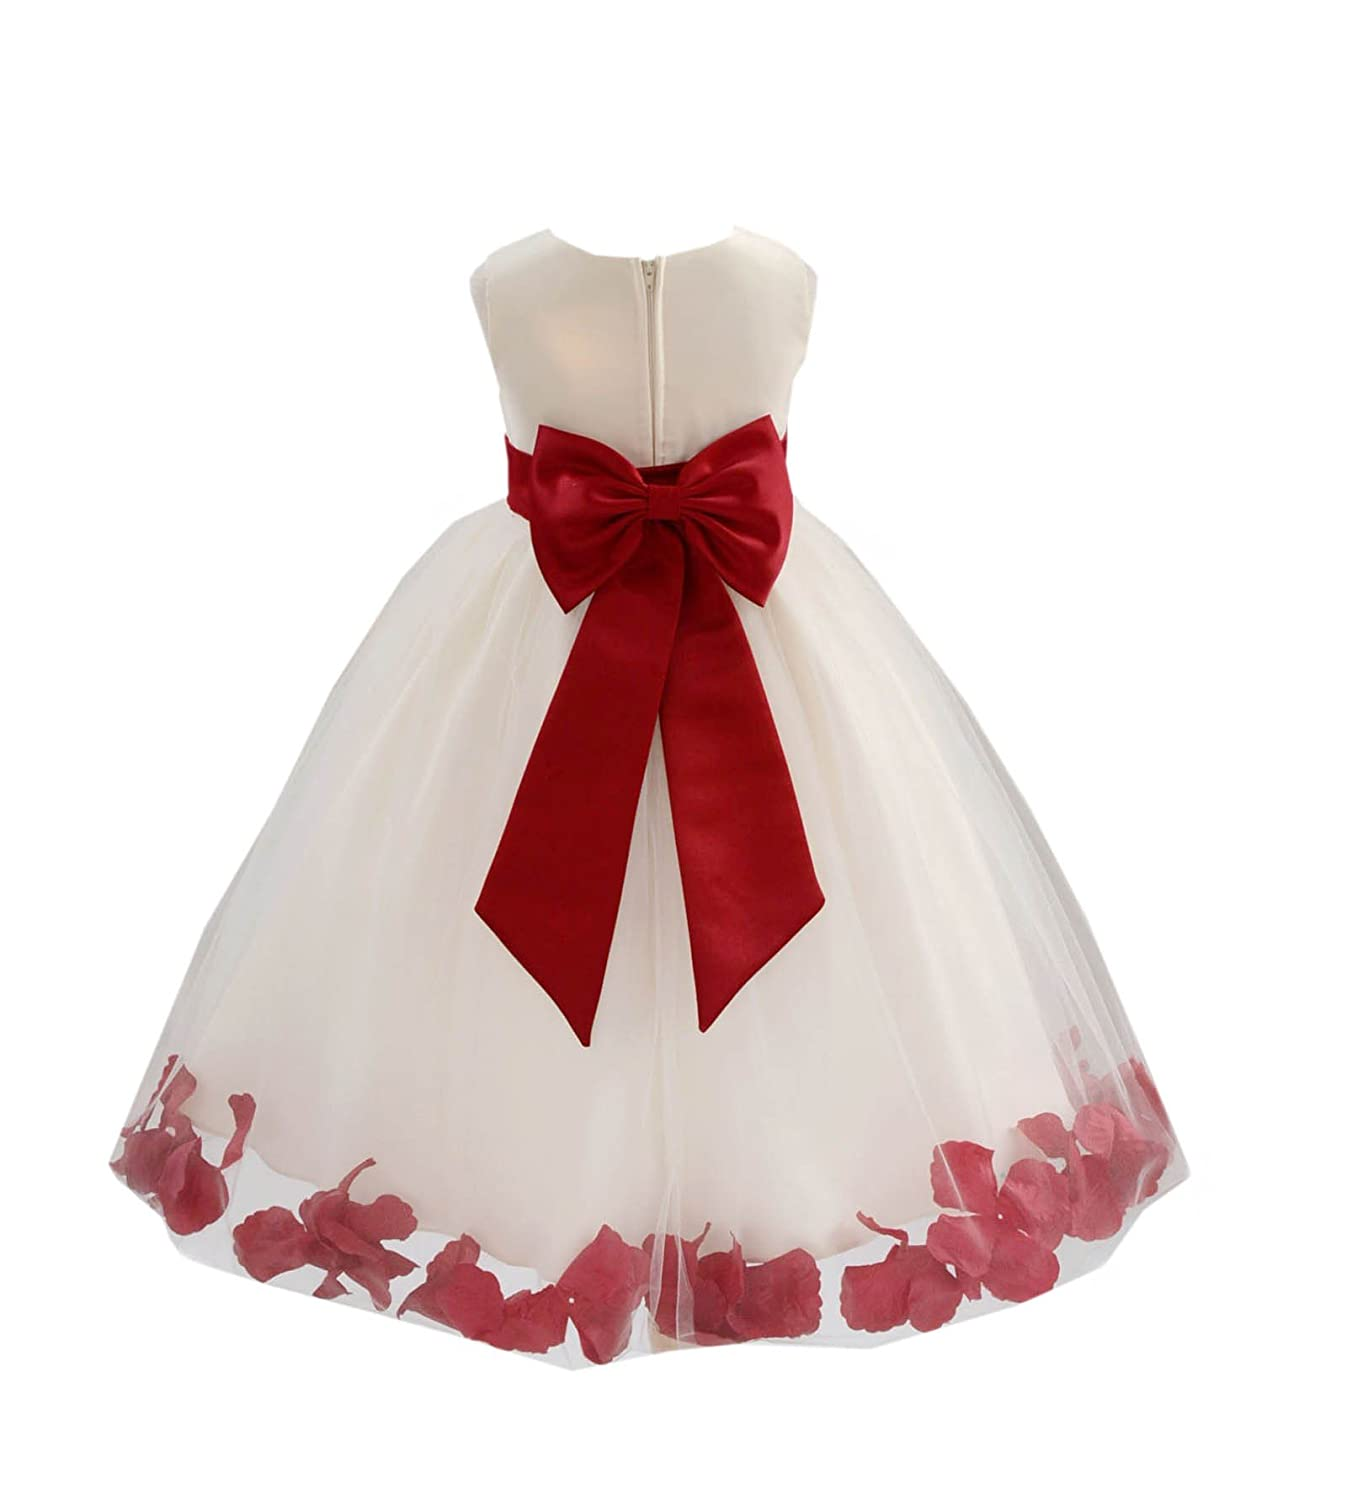 dbe69a2bdb4 Amazon.com  Ivory Tulle Rose Floral Petals Toddler Flower Girl Dresses  Bridal Gown 302T  Clothing